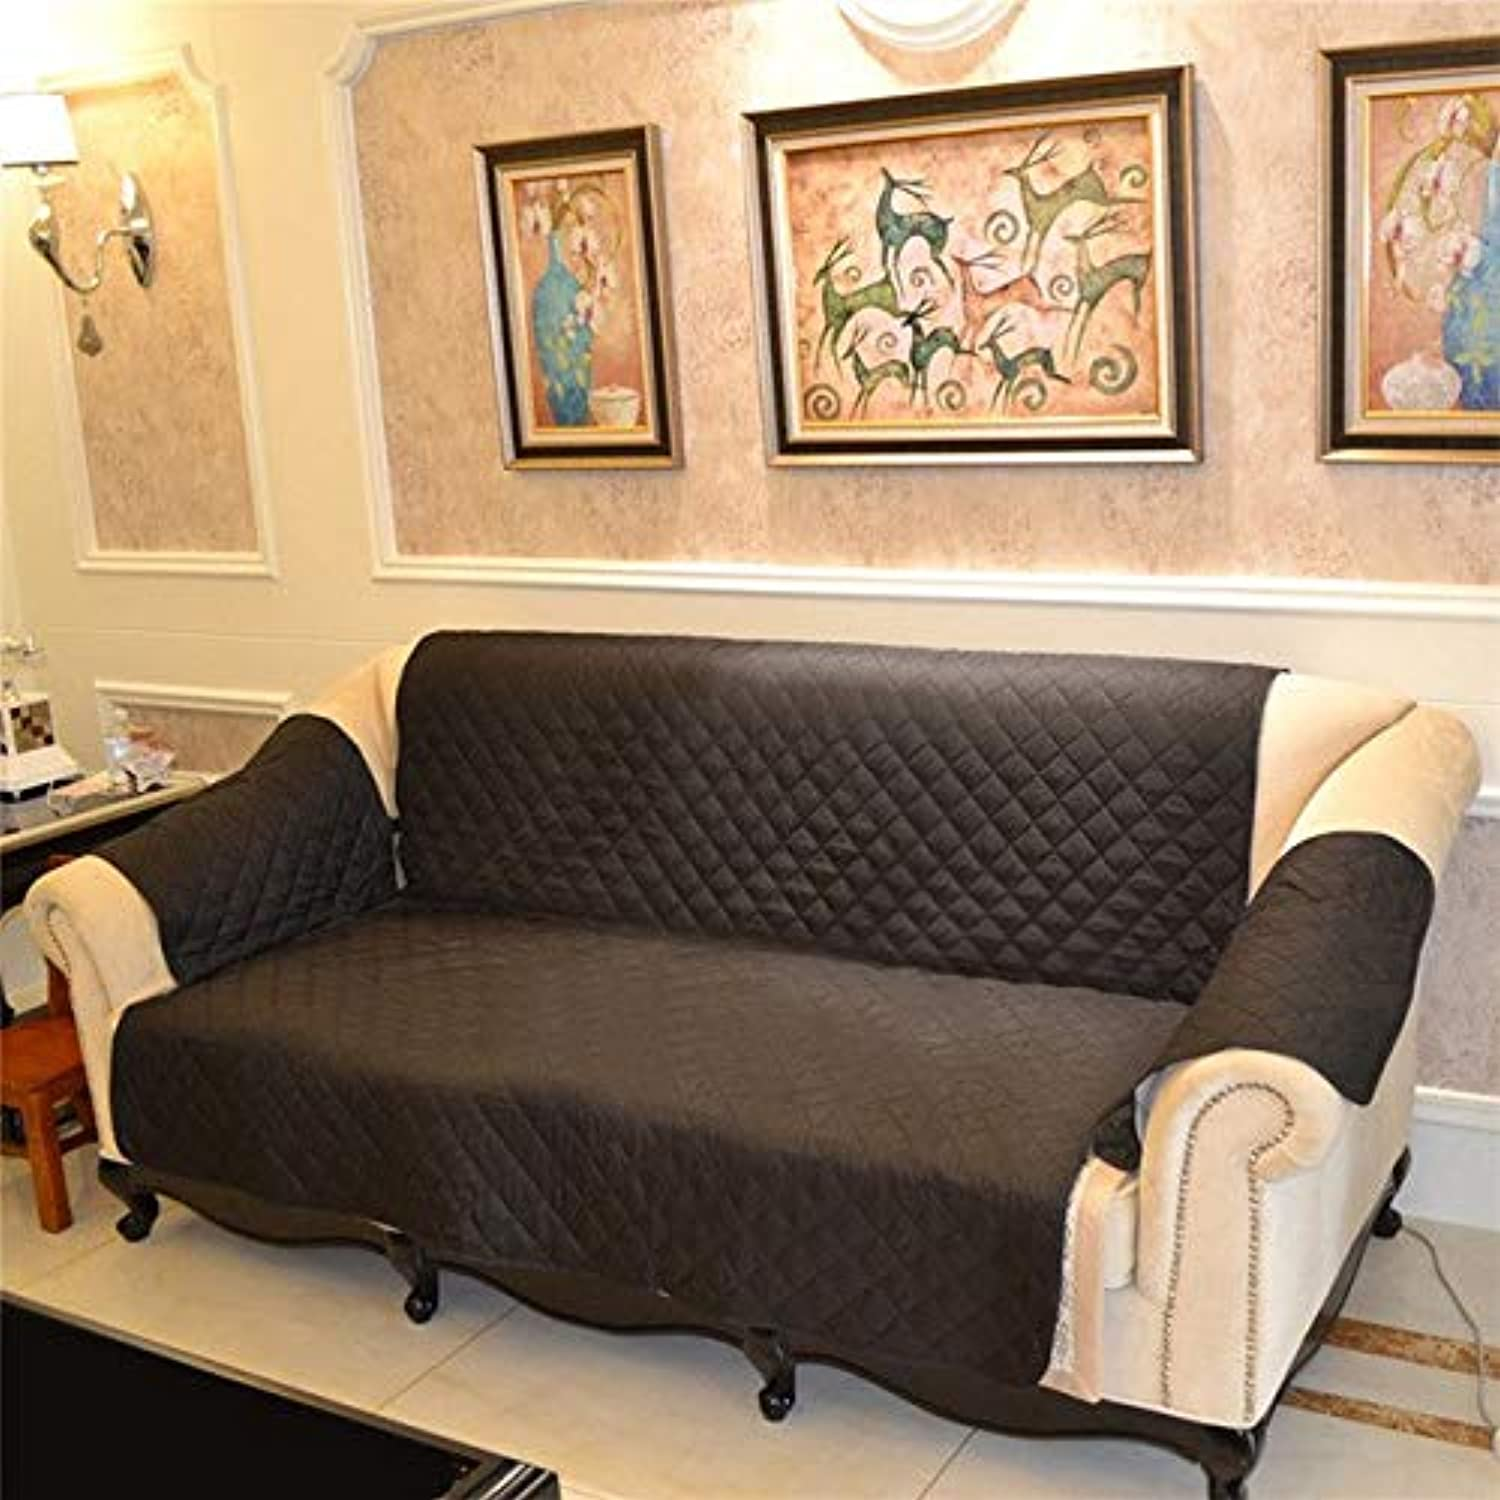 Swell Single Two Three Four Seater Sofa Covers Cotton Slipcover Dailytribune Chair Design For Home Dailytribuneorg